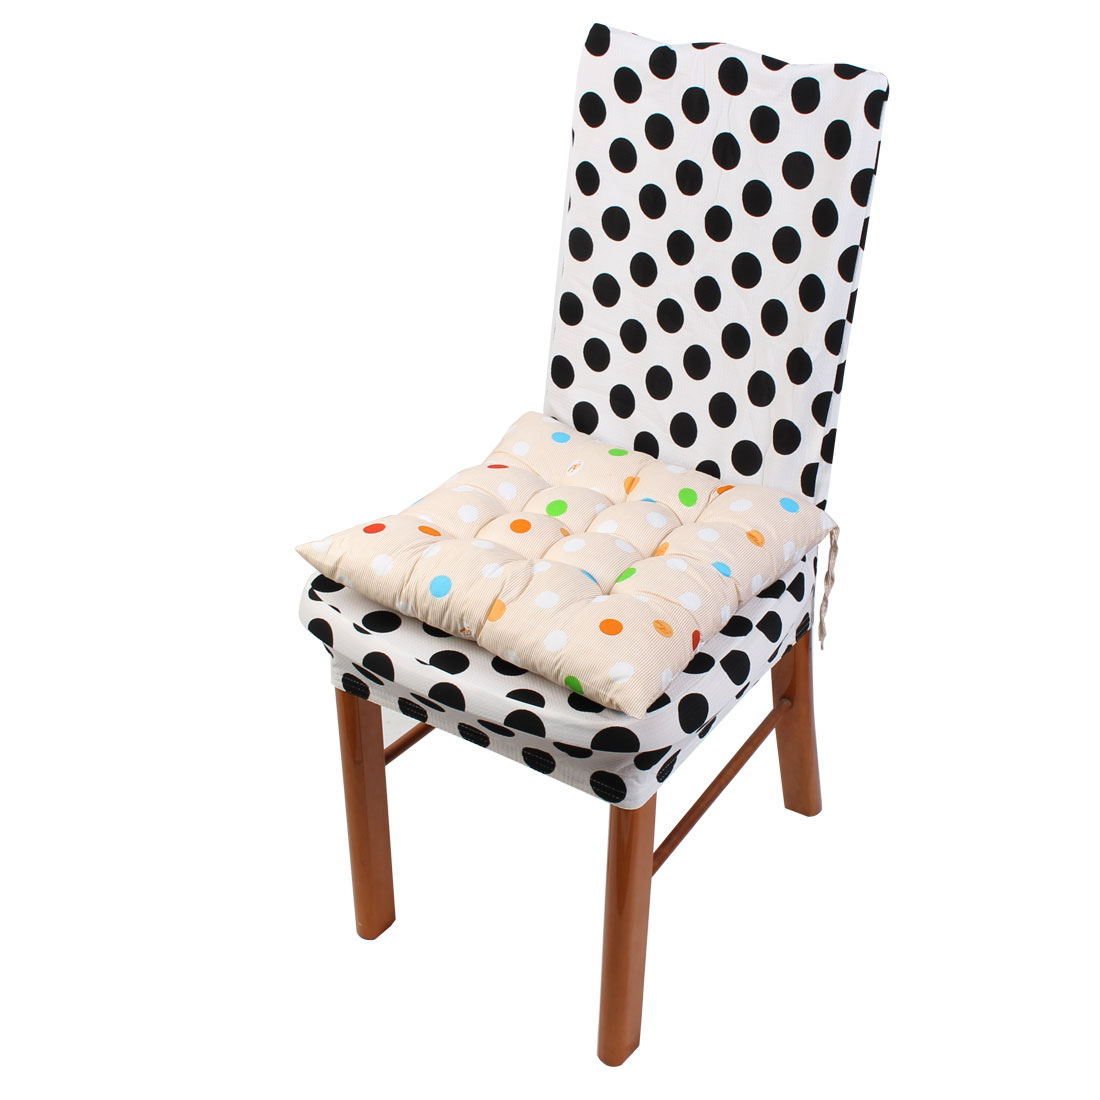 Household Office Polyester Dots Print Keeping Warm Chair Cushion Pad Beige 40 x 40cm